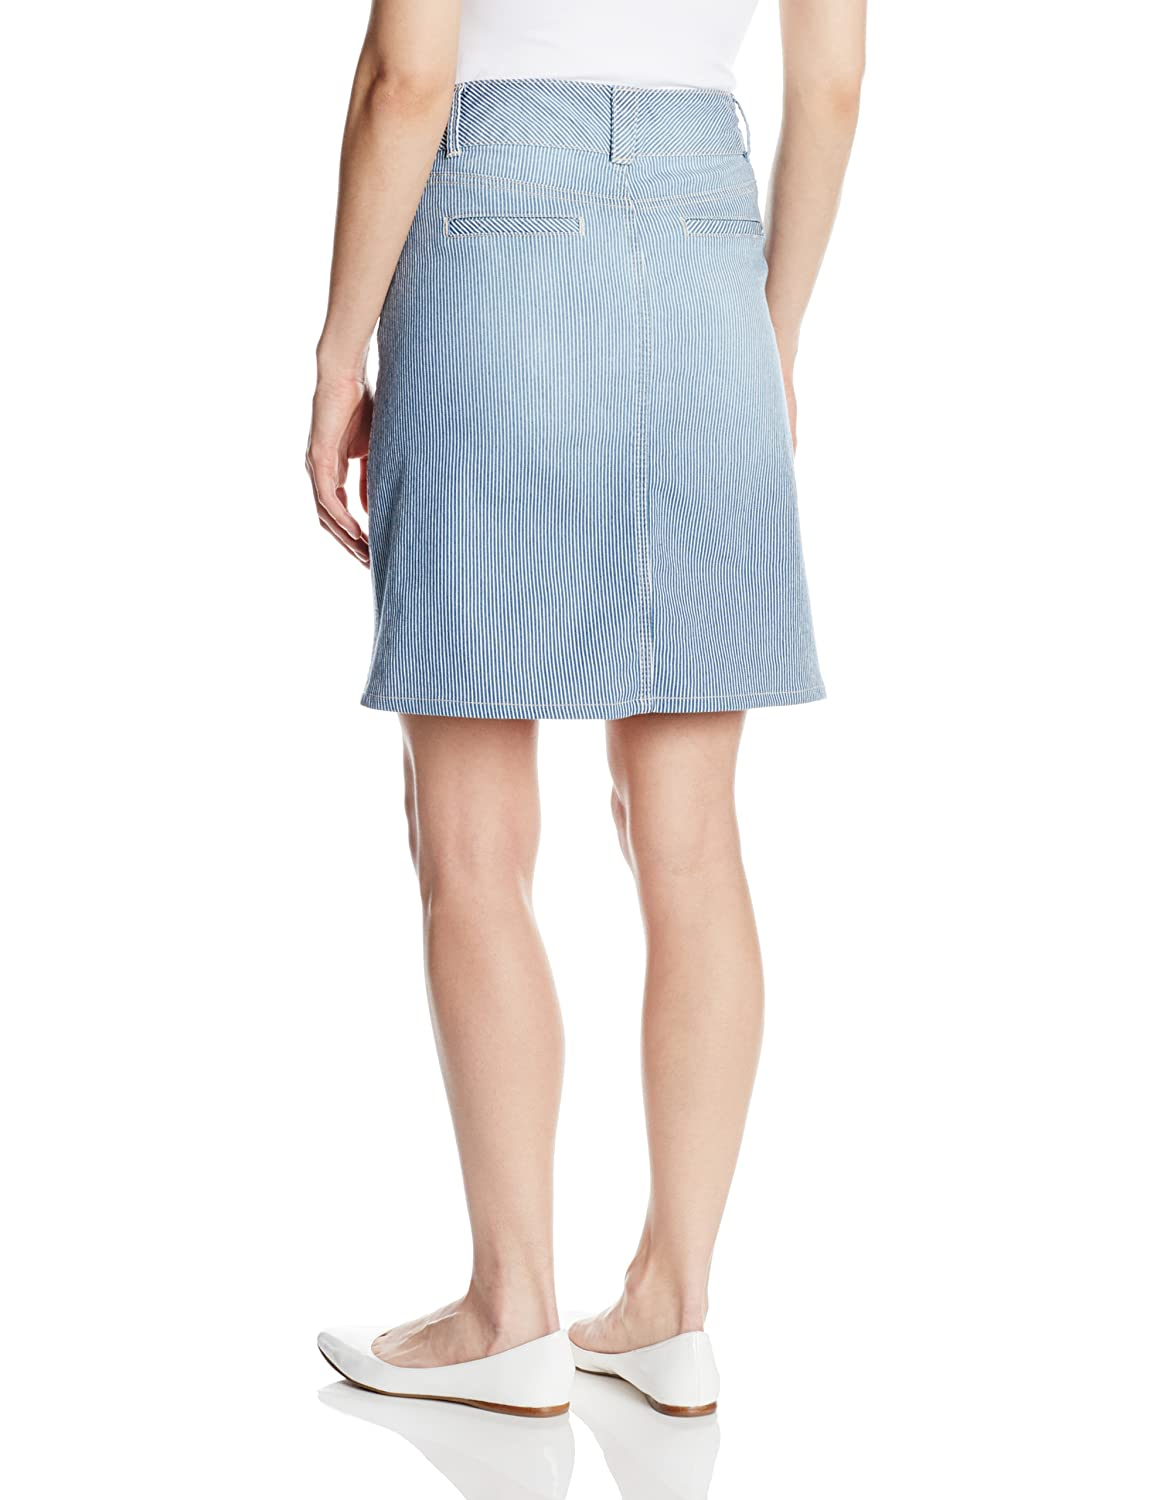 NYDJ Womens Ray a Line Skirt Old West Wash 12 Not Your Daughter/'s Jeans Women/'s Collection M81E31OW